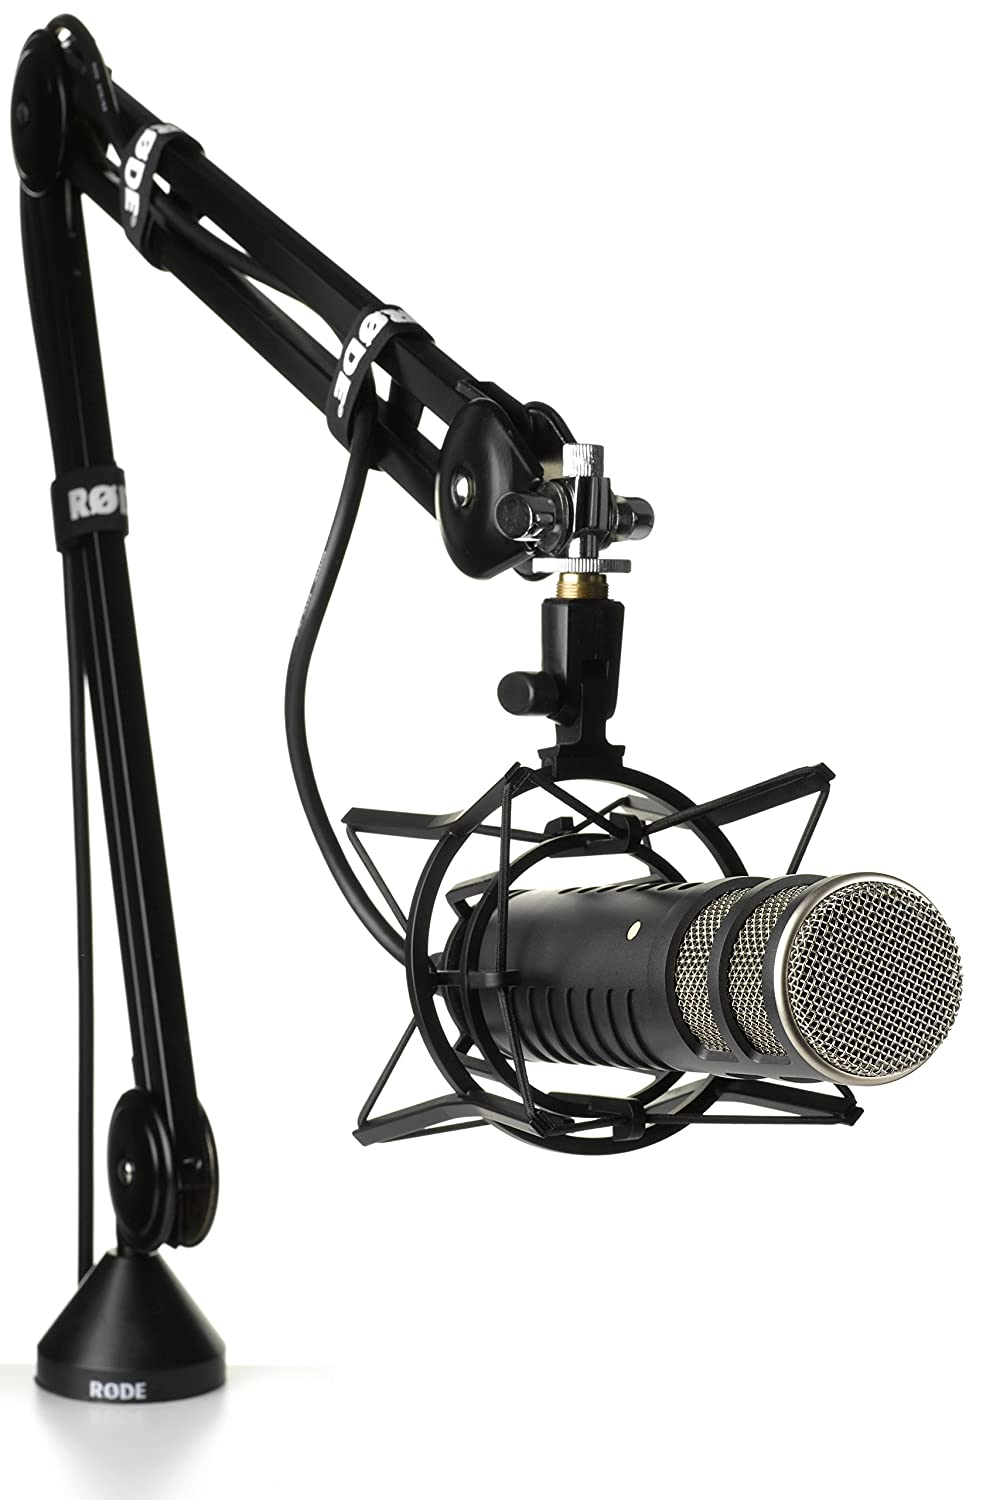 RODE PSA Swivel Mount Studio Microphone Boom Arm Amazonca - Desk boom mic stand